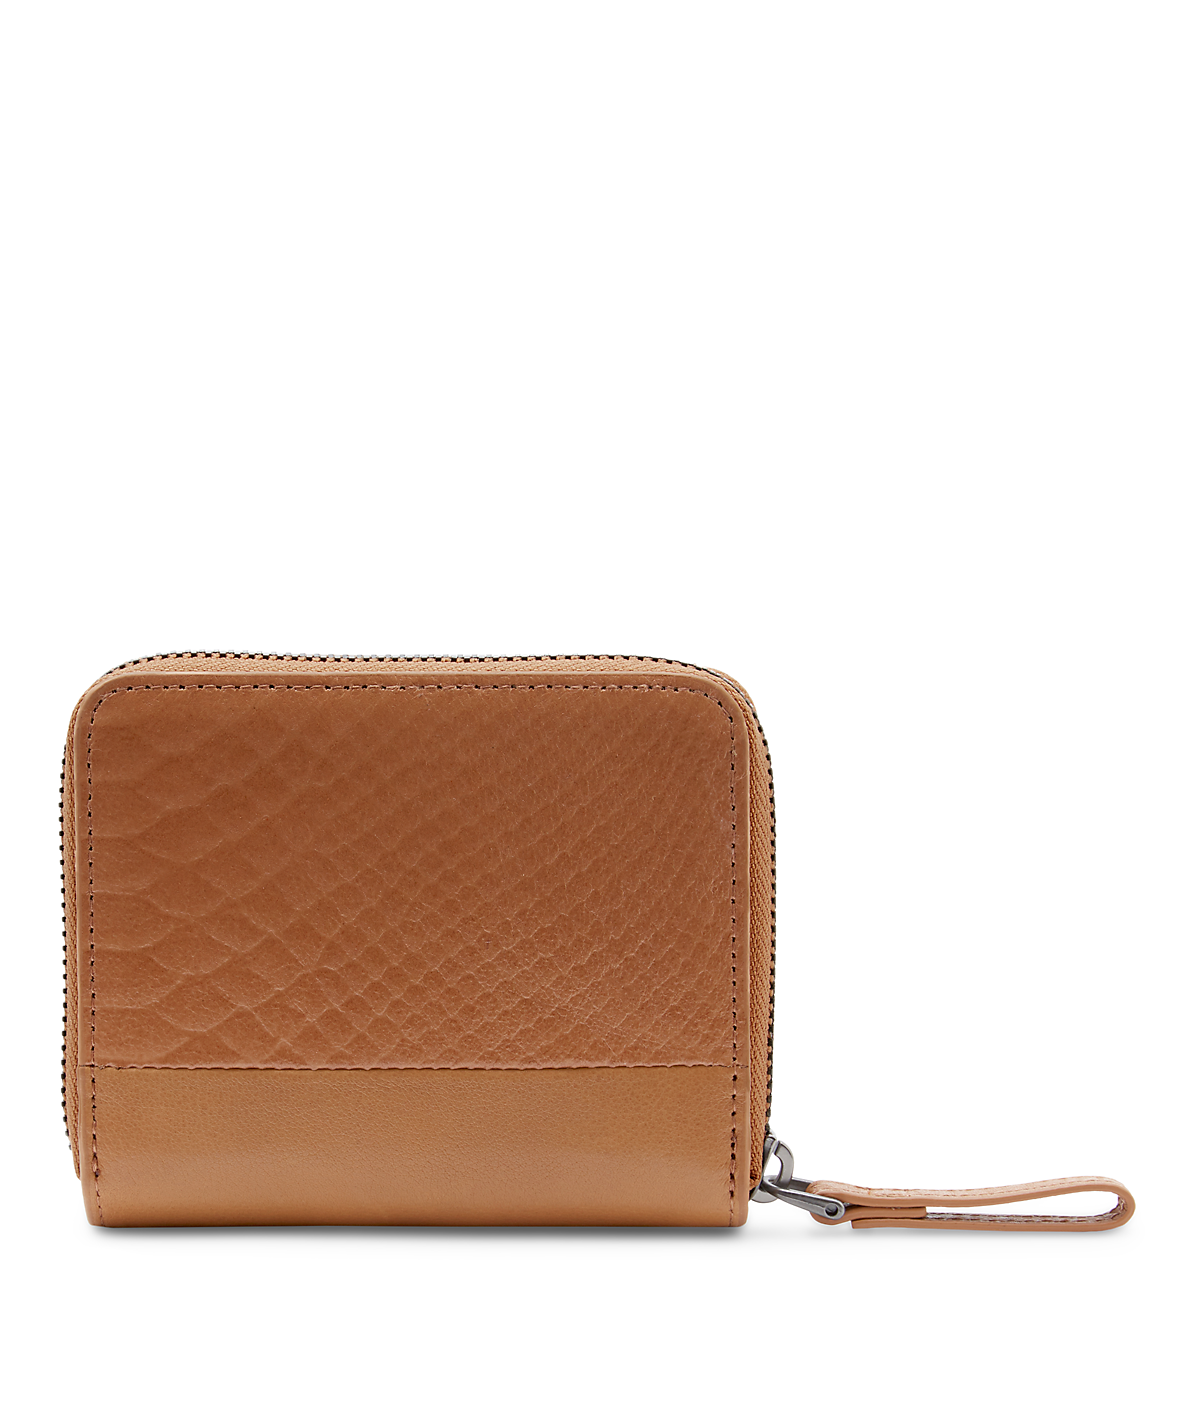 Sabia wallet from liebeskind